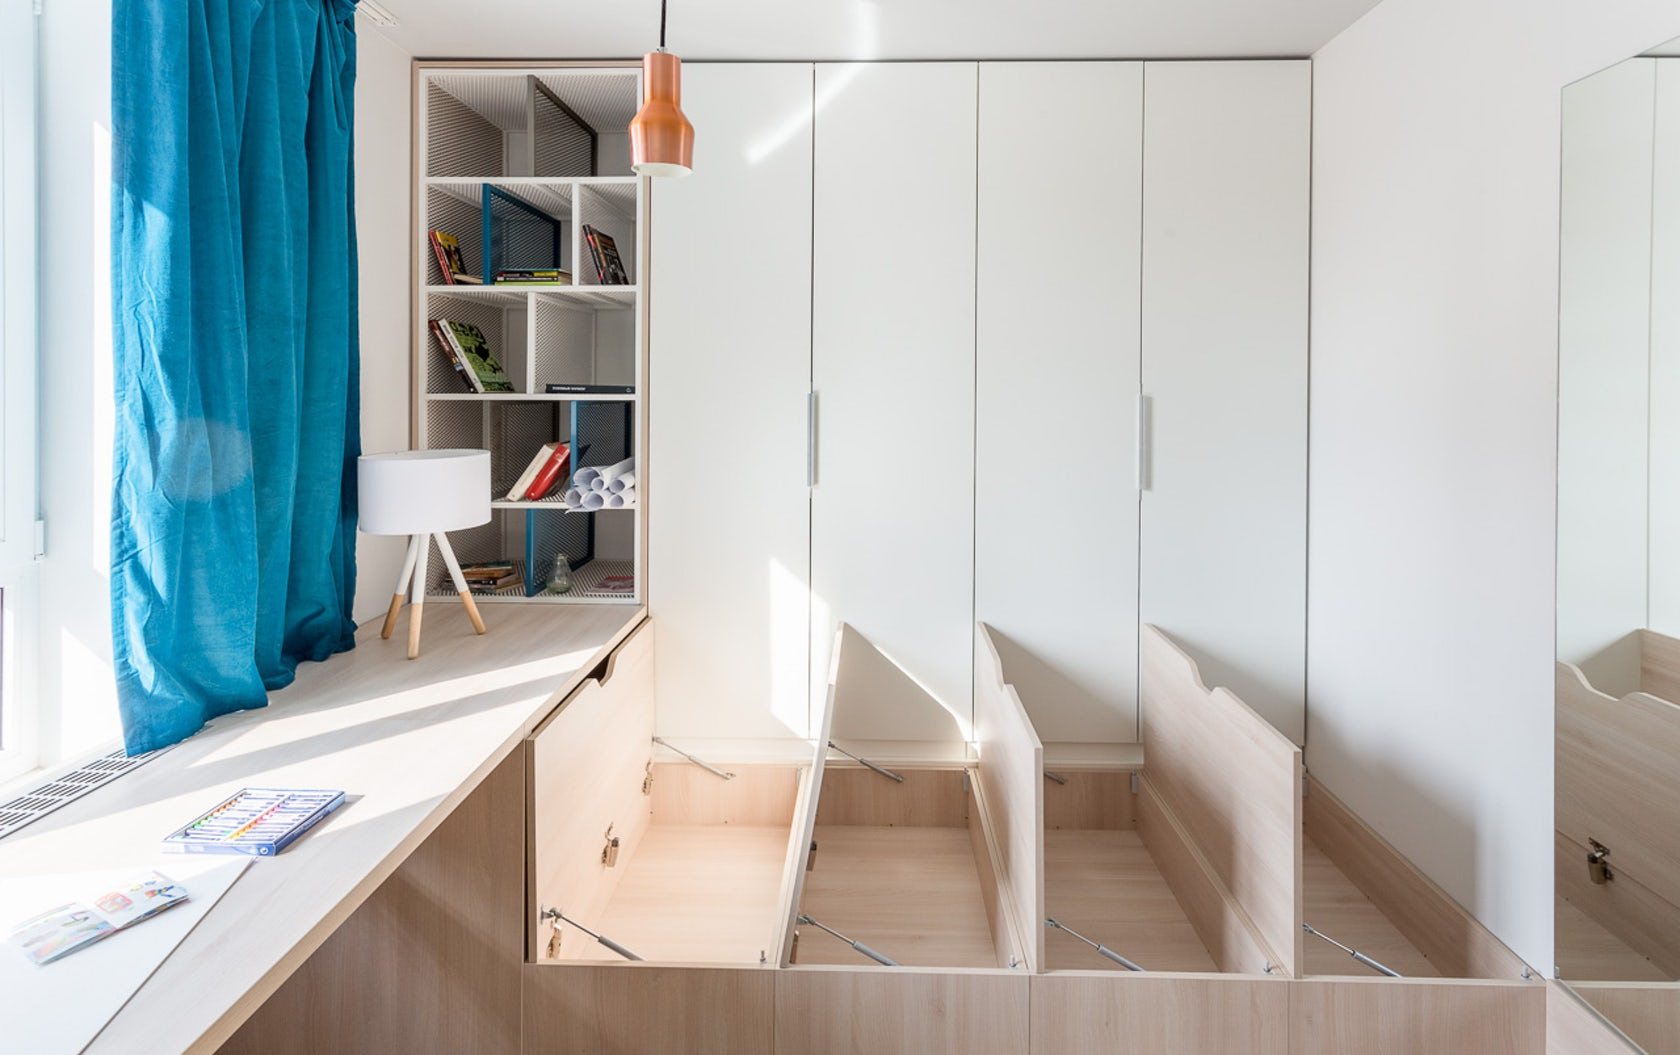 storage ideas 5 Must-use Storage Ideas To Transform Small Spaces 5 Must use Storage Ideas To Transform Small Spaces 5 1